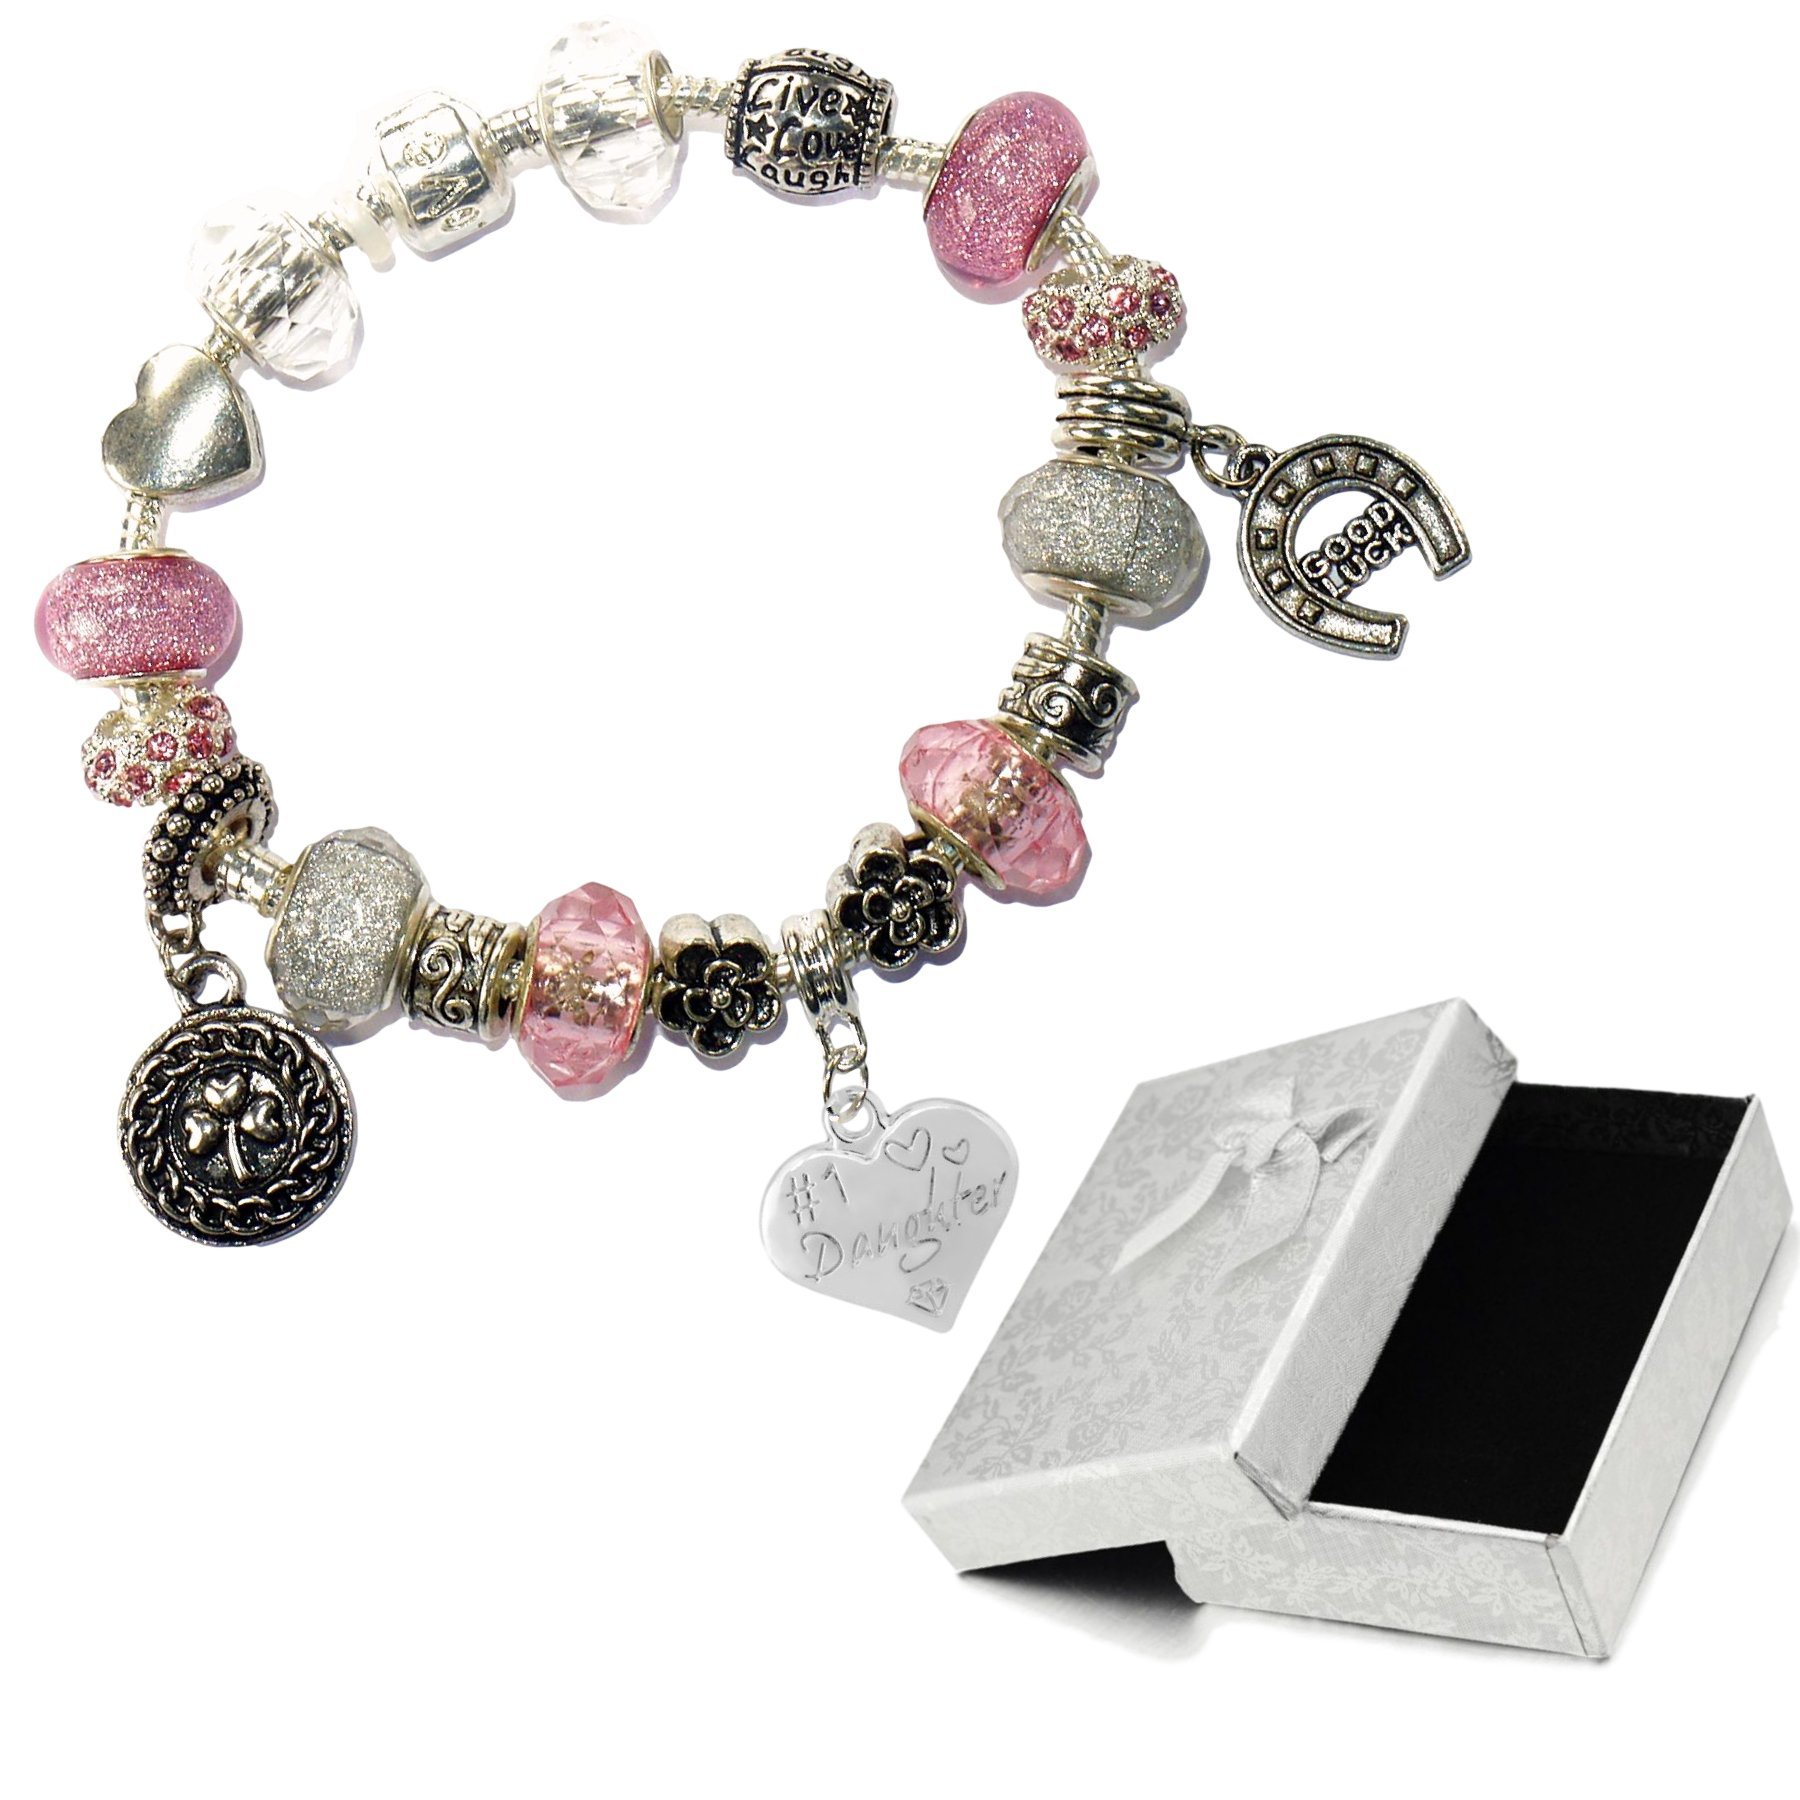 Number One1 Daughter Pink Silver Crystal Good Luck Pandora Style Bracelet With Charms Gift Box